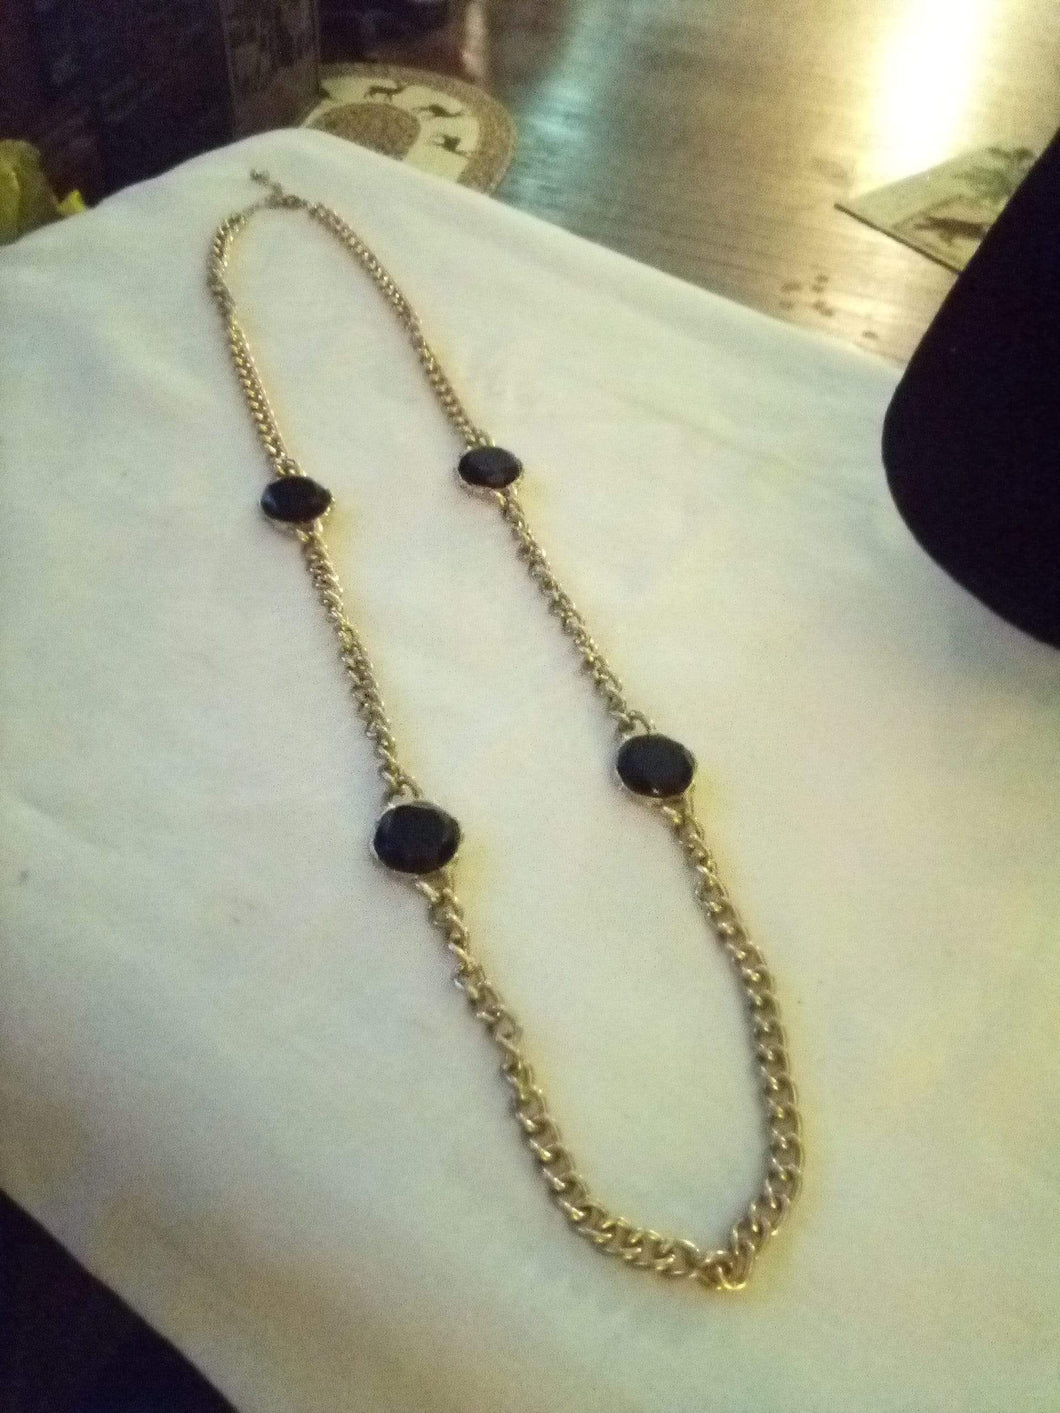 Long silver tone necklace with black stone dividers - B&P'sringsnthings